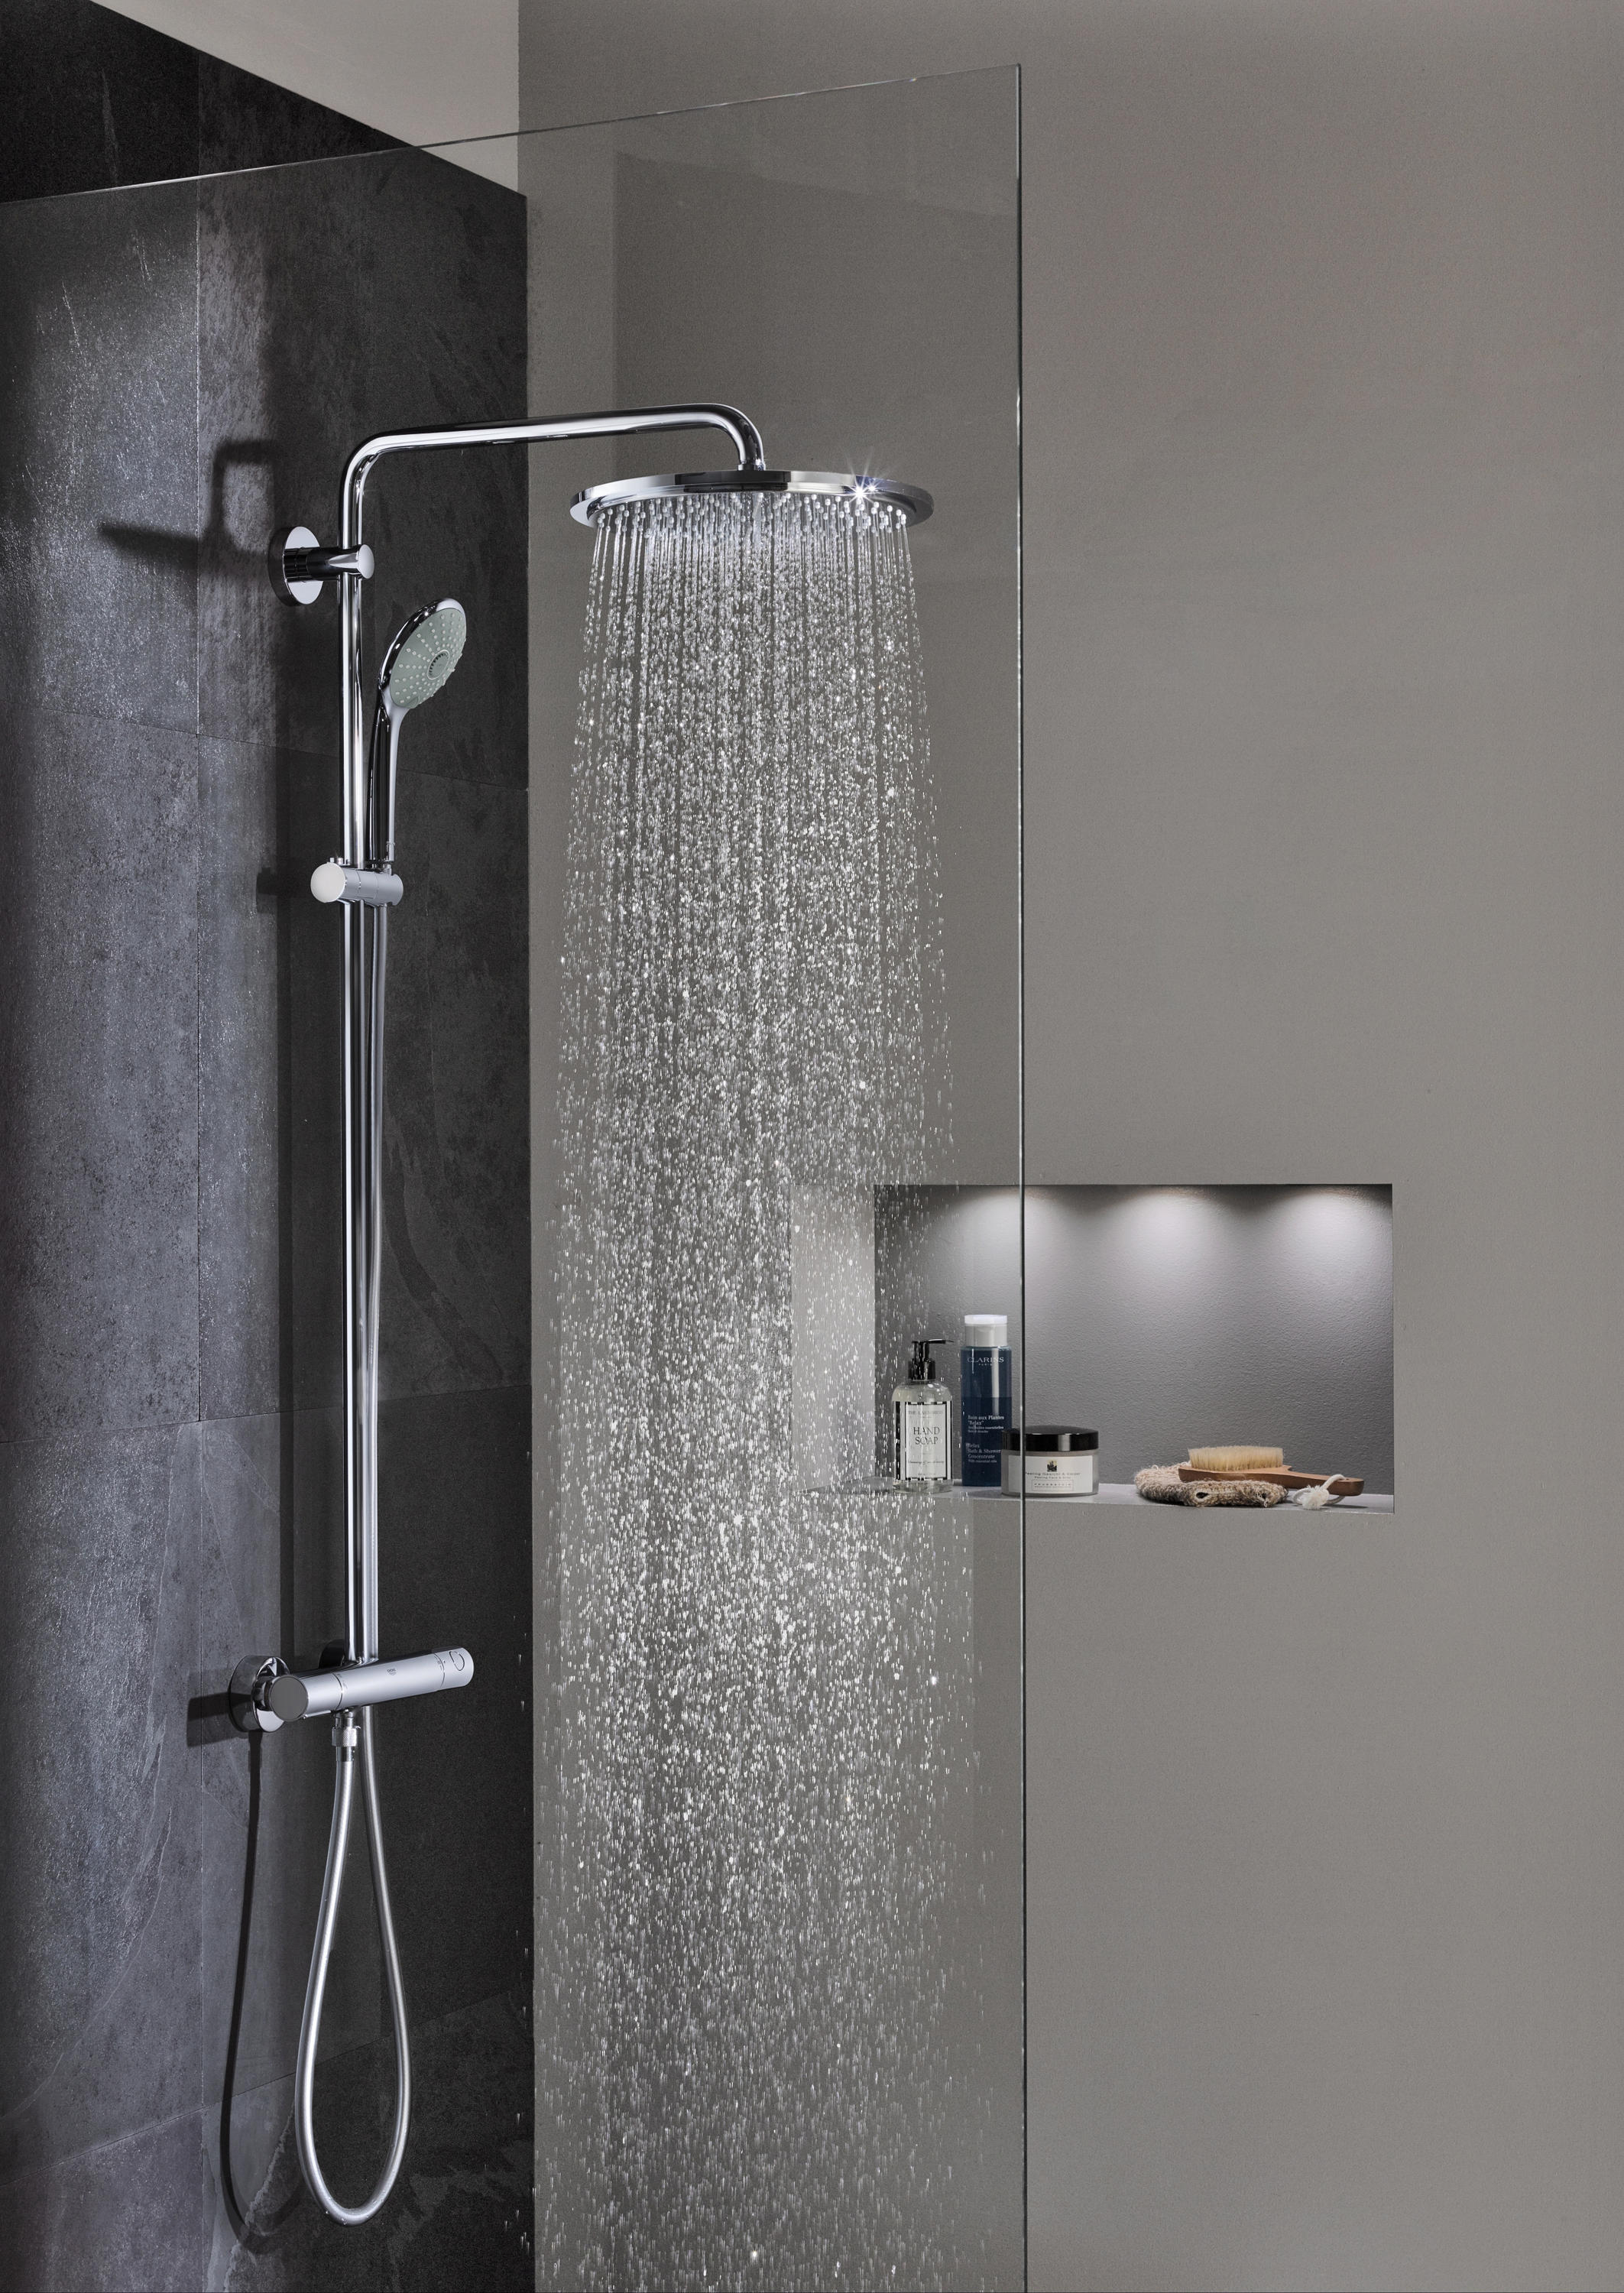 rainshower system smartcontrol 360 duo shower system with thermostat shower taps mixers from. Black Bedroom Furniture Sets. Home Design Ideas